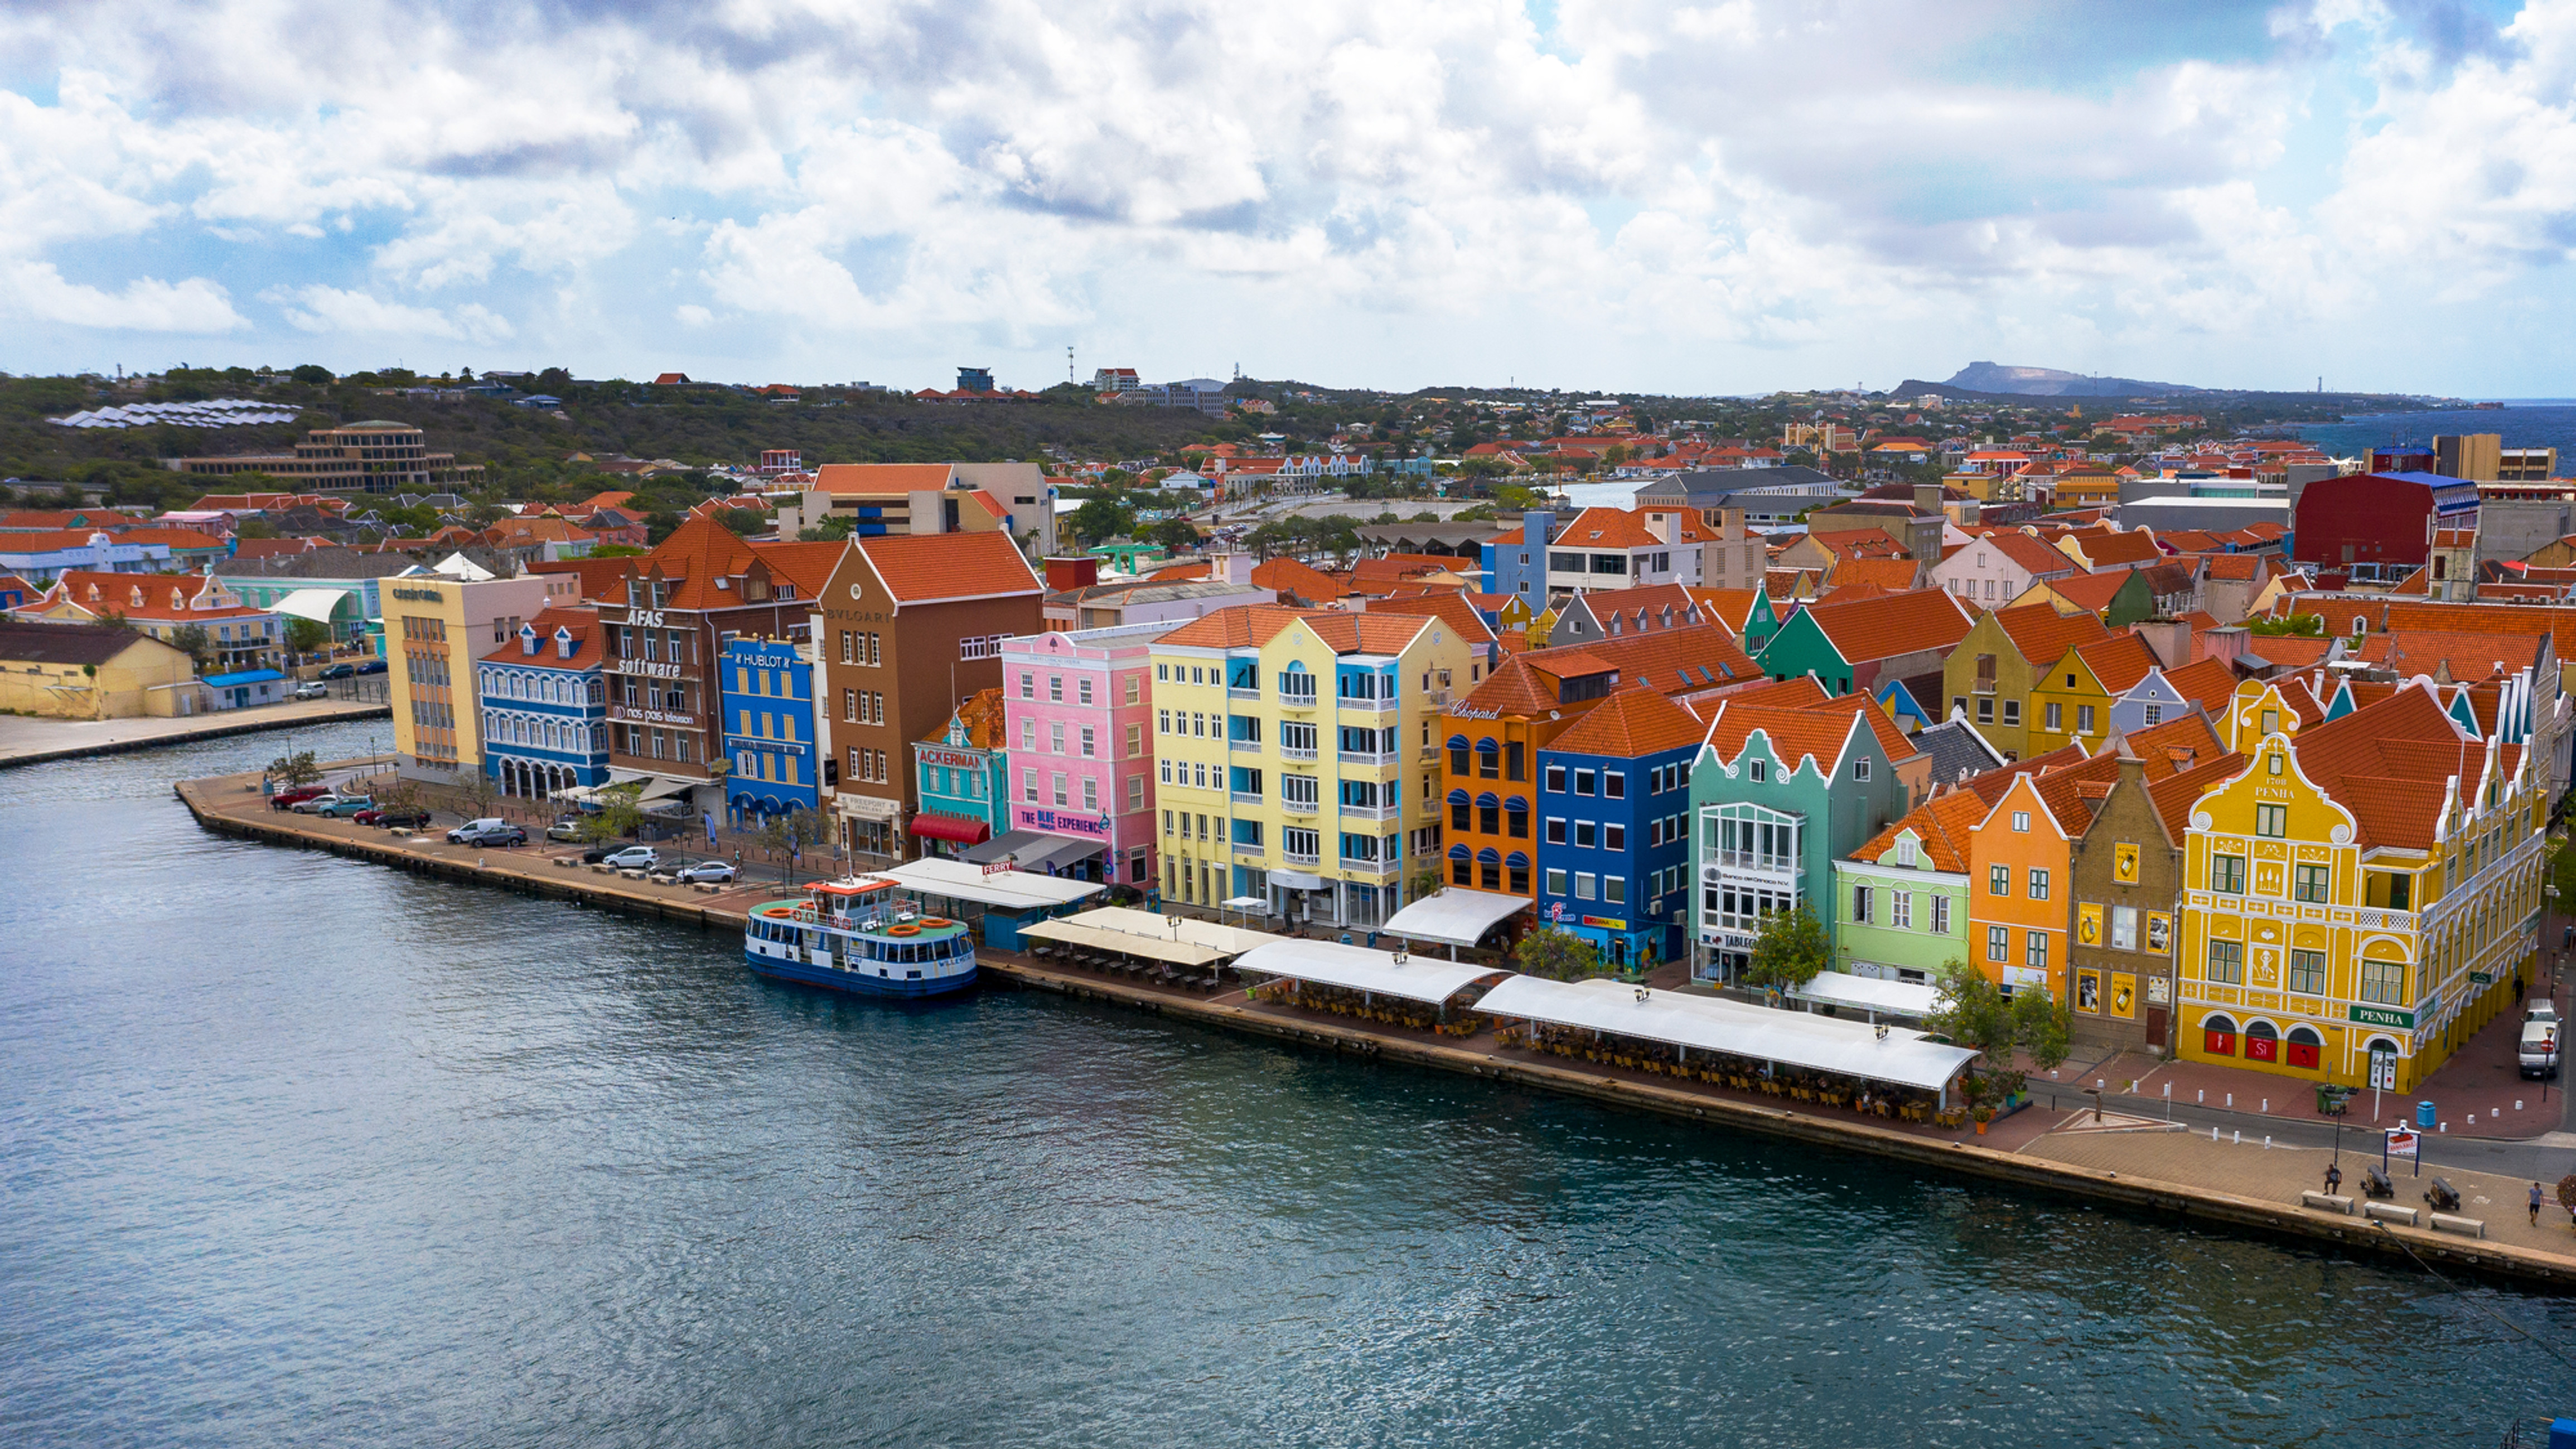 This is Willemstad